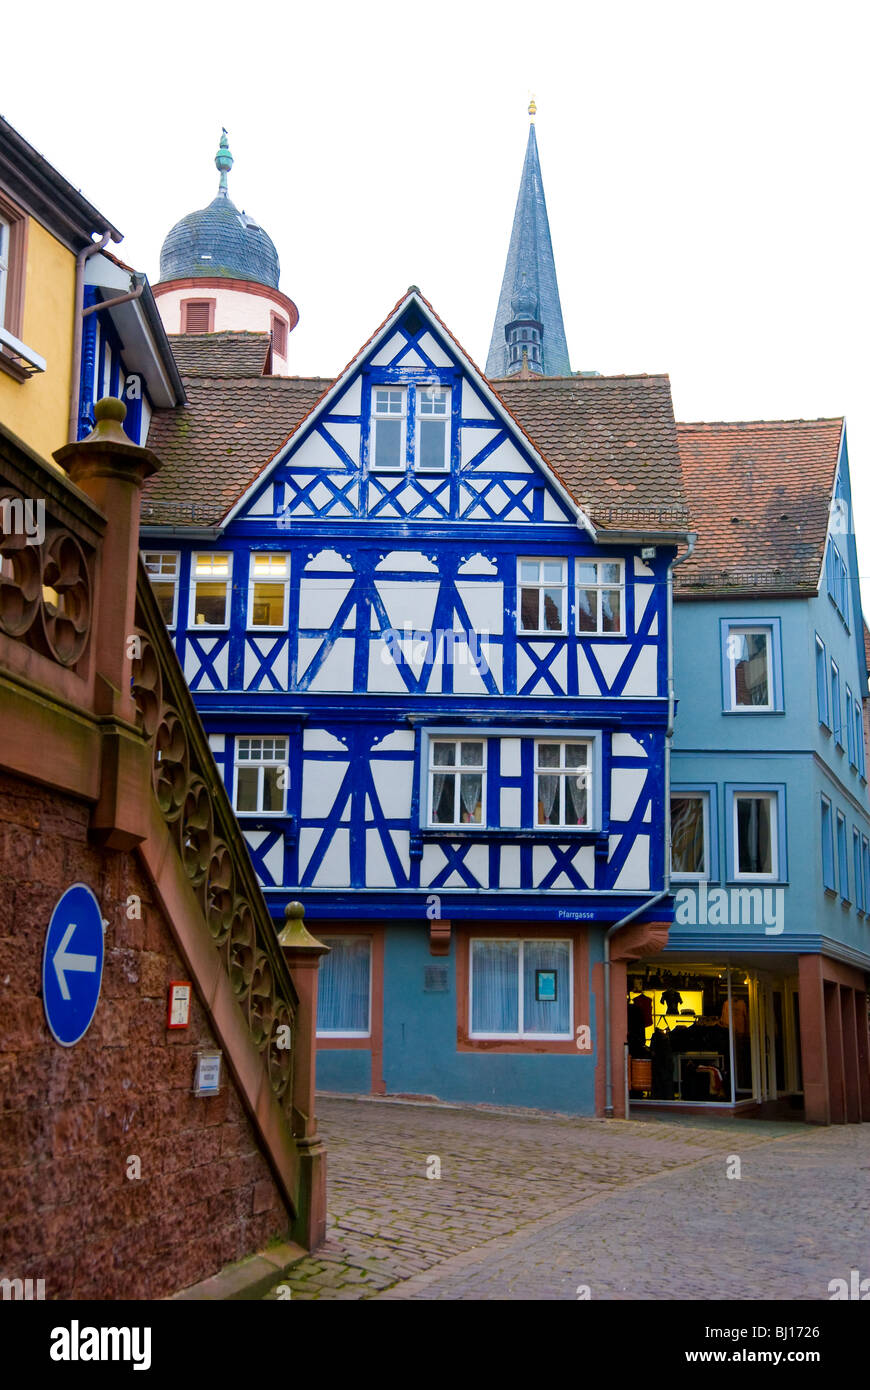 Well preserved half-timbered buildings, many built in 16th century, in Wertheim, Germany - Stock Image